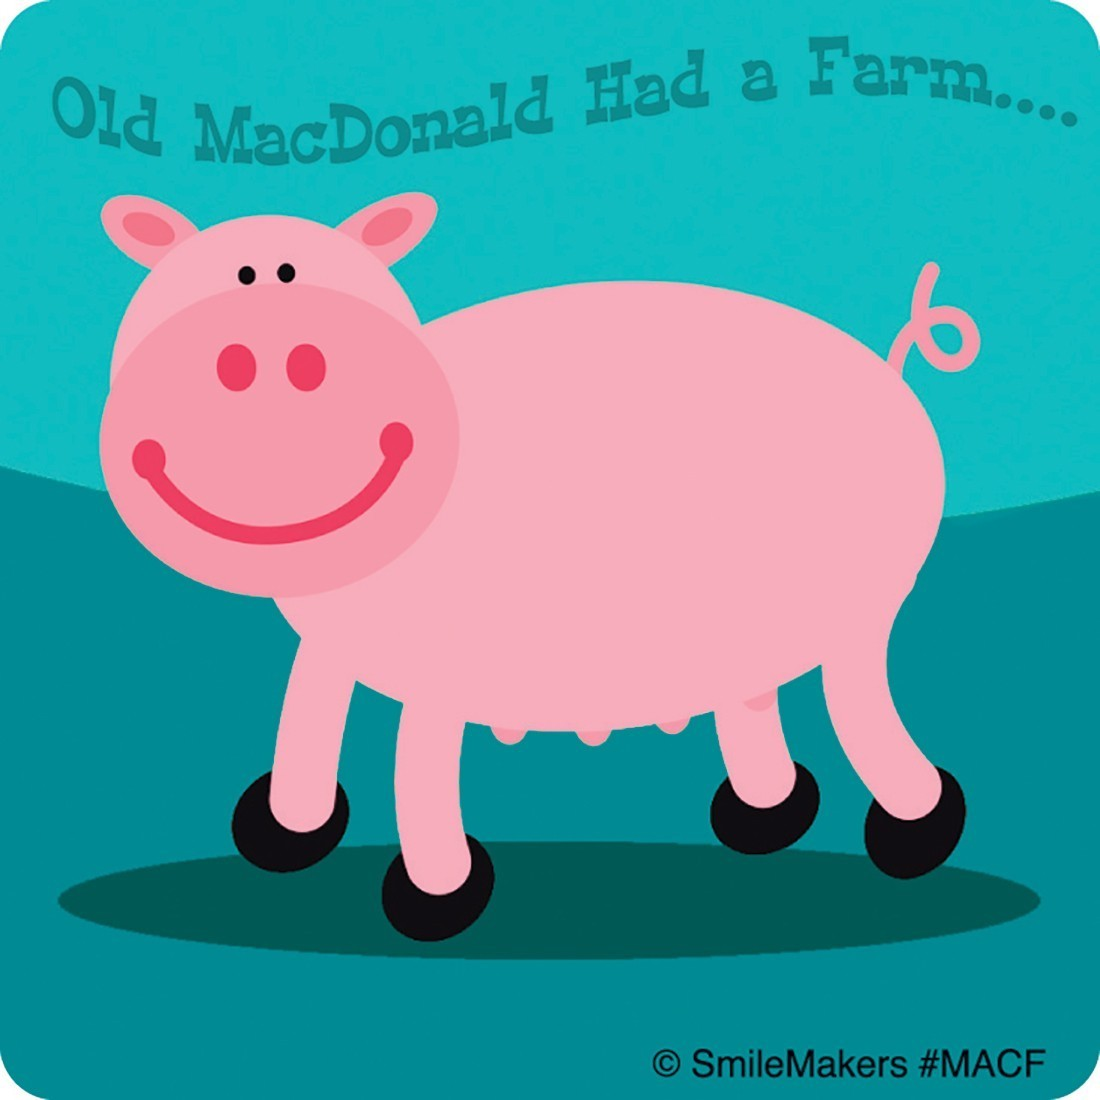 Farm Animals Stickers - Sticker Assortments from SmileMakers